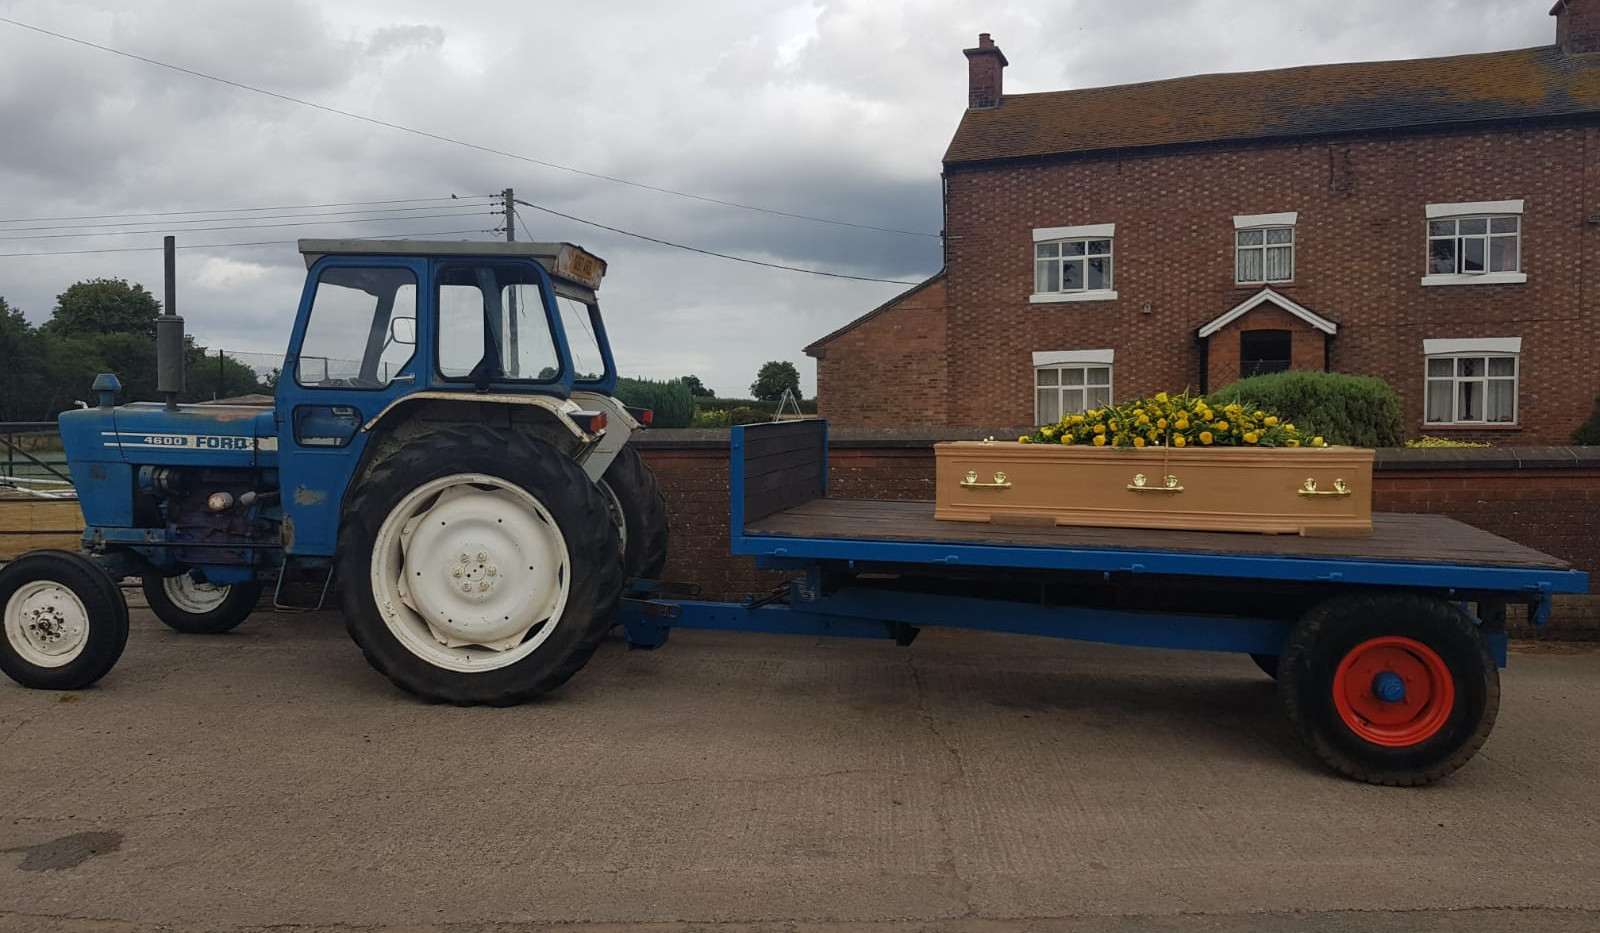 Funeral of the late Nigel Smith - Tractor & Trailer